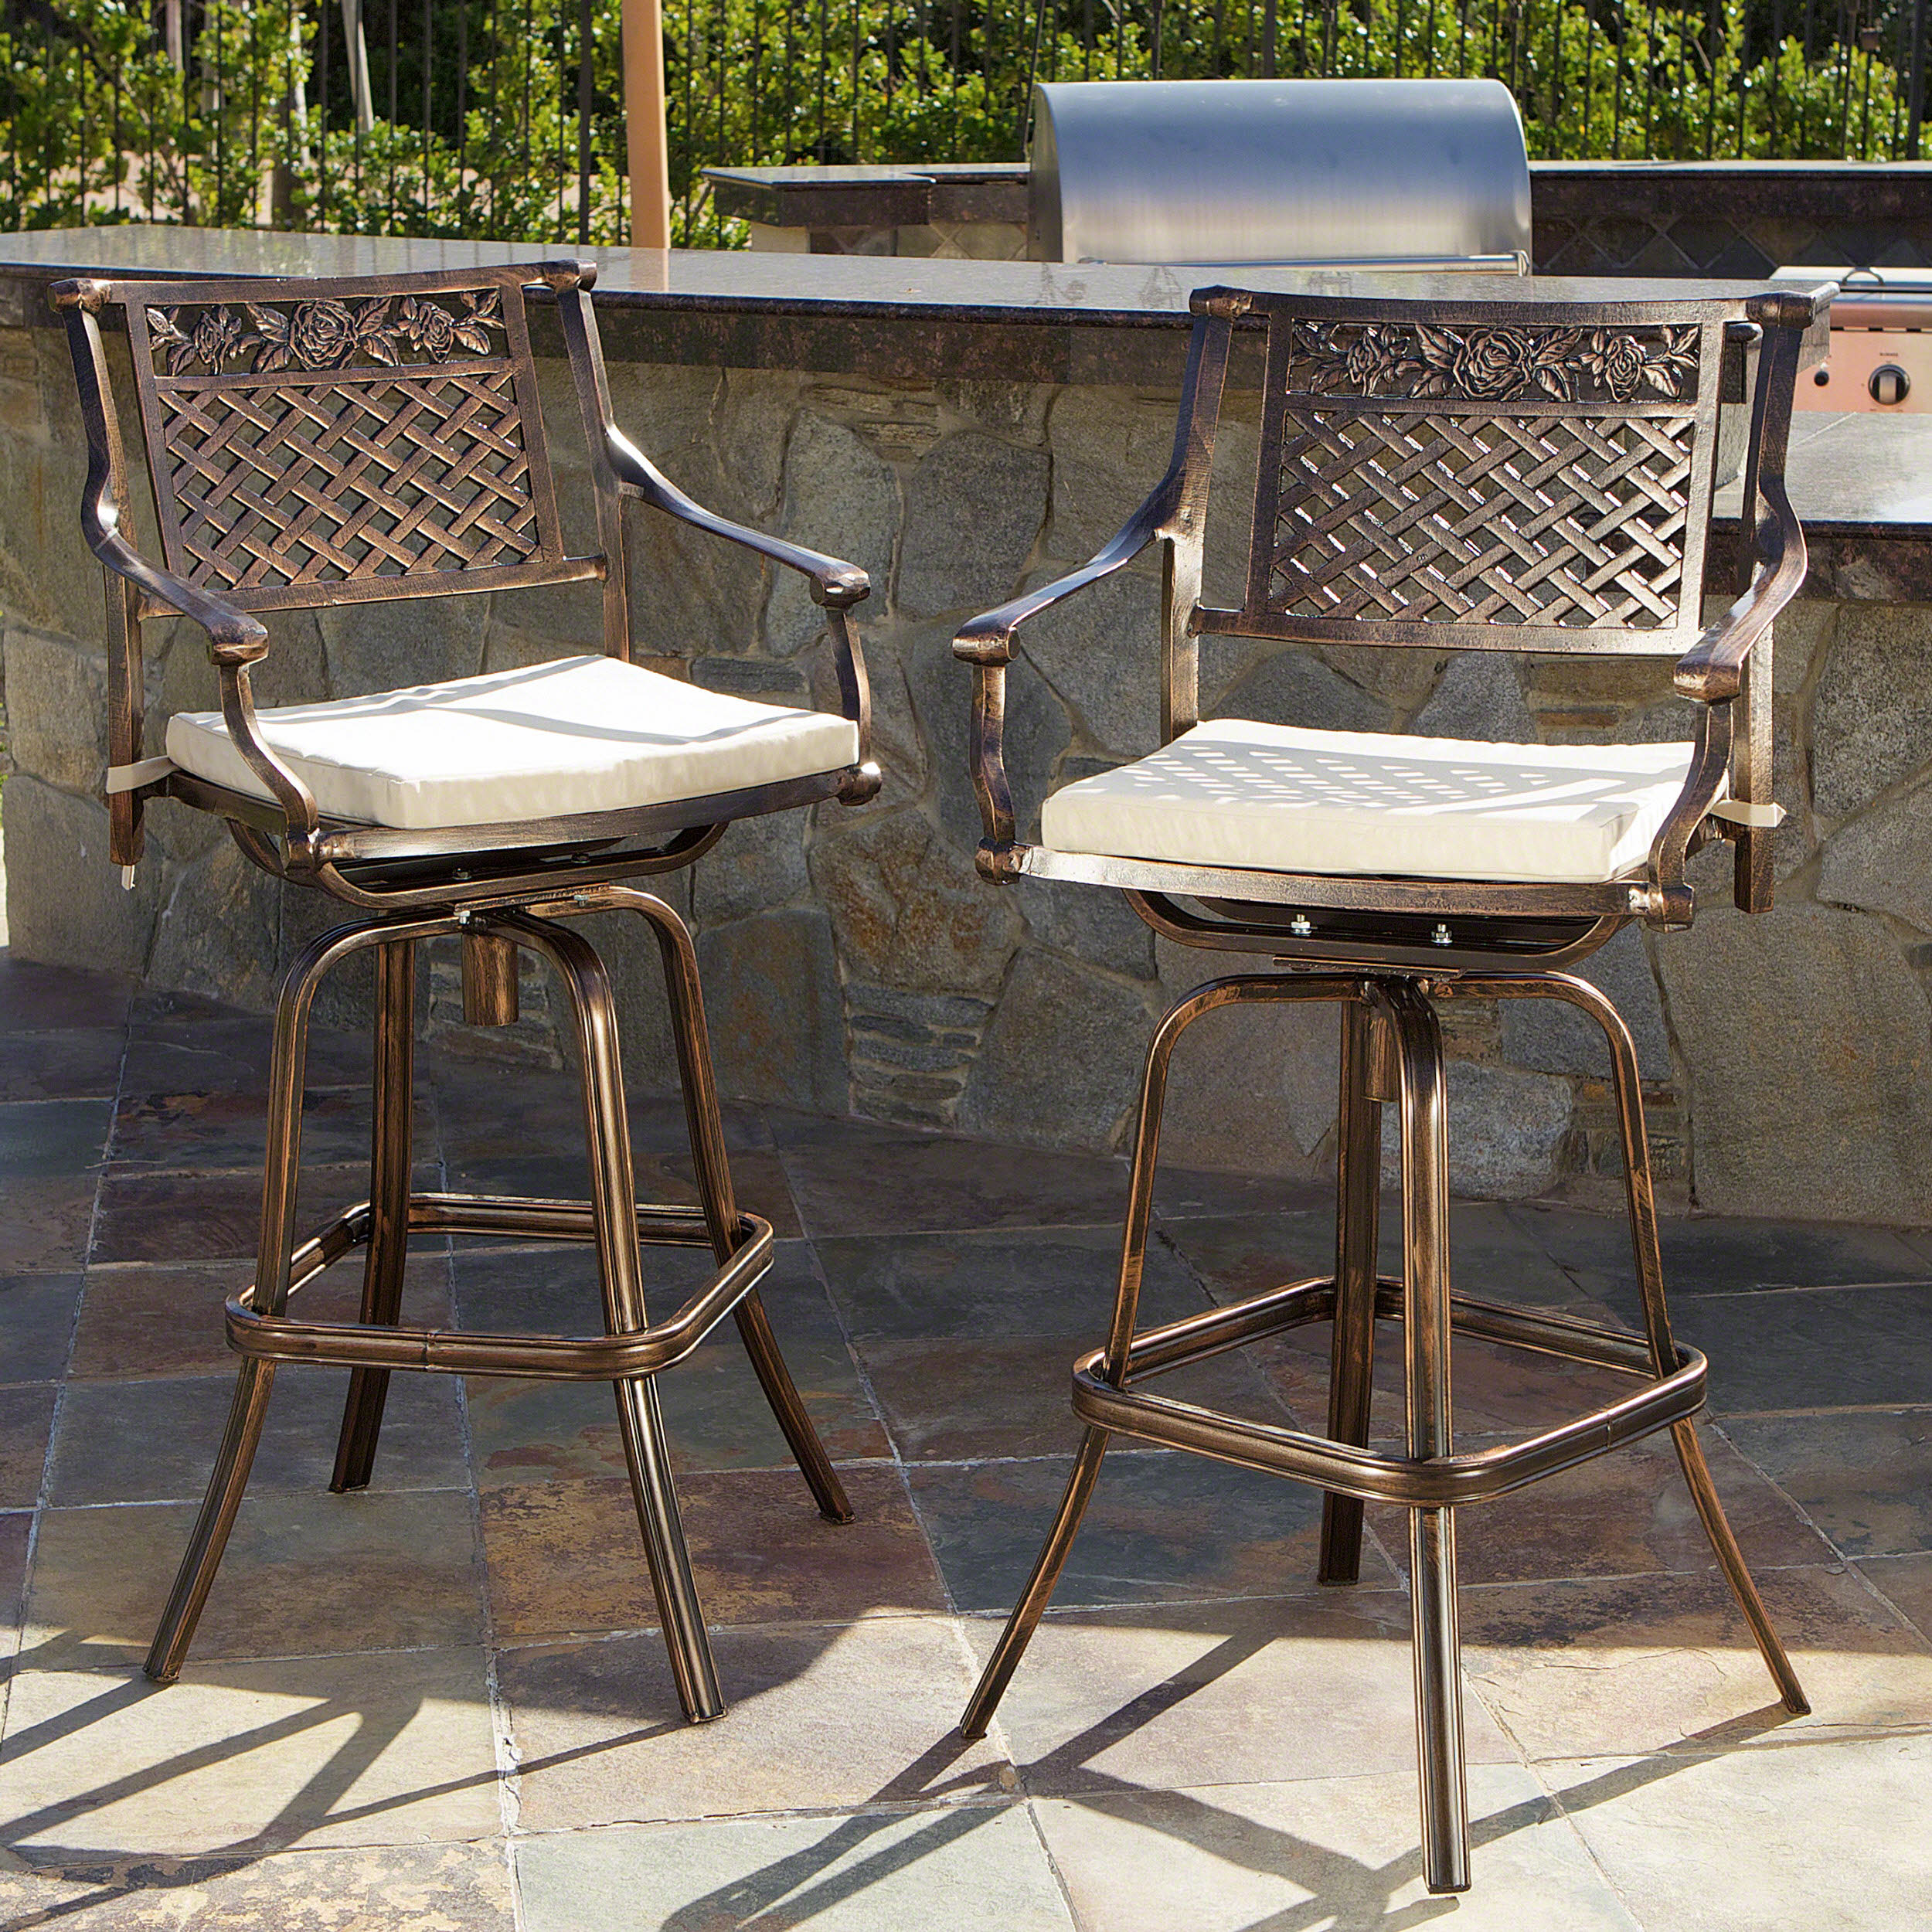 Emory Cast Aluminum Barstool with Cushions, Set of 2, Copper